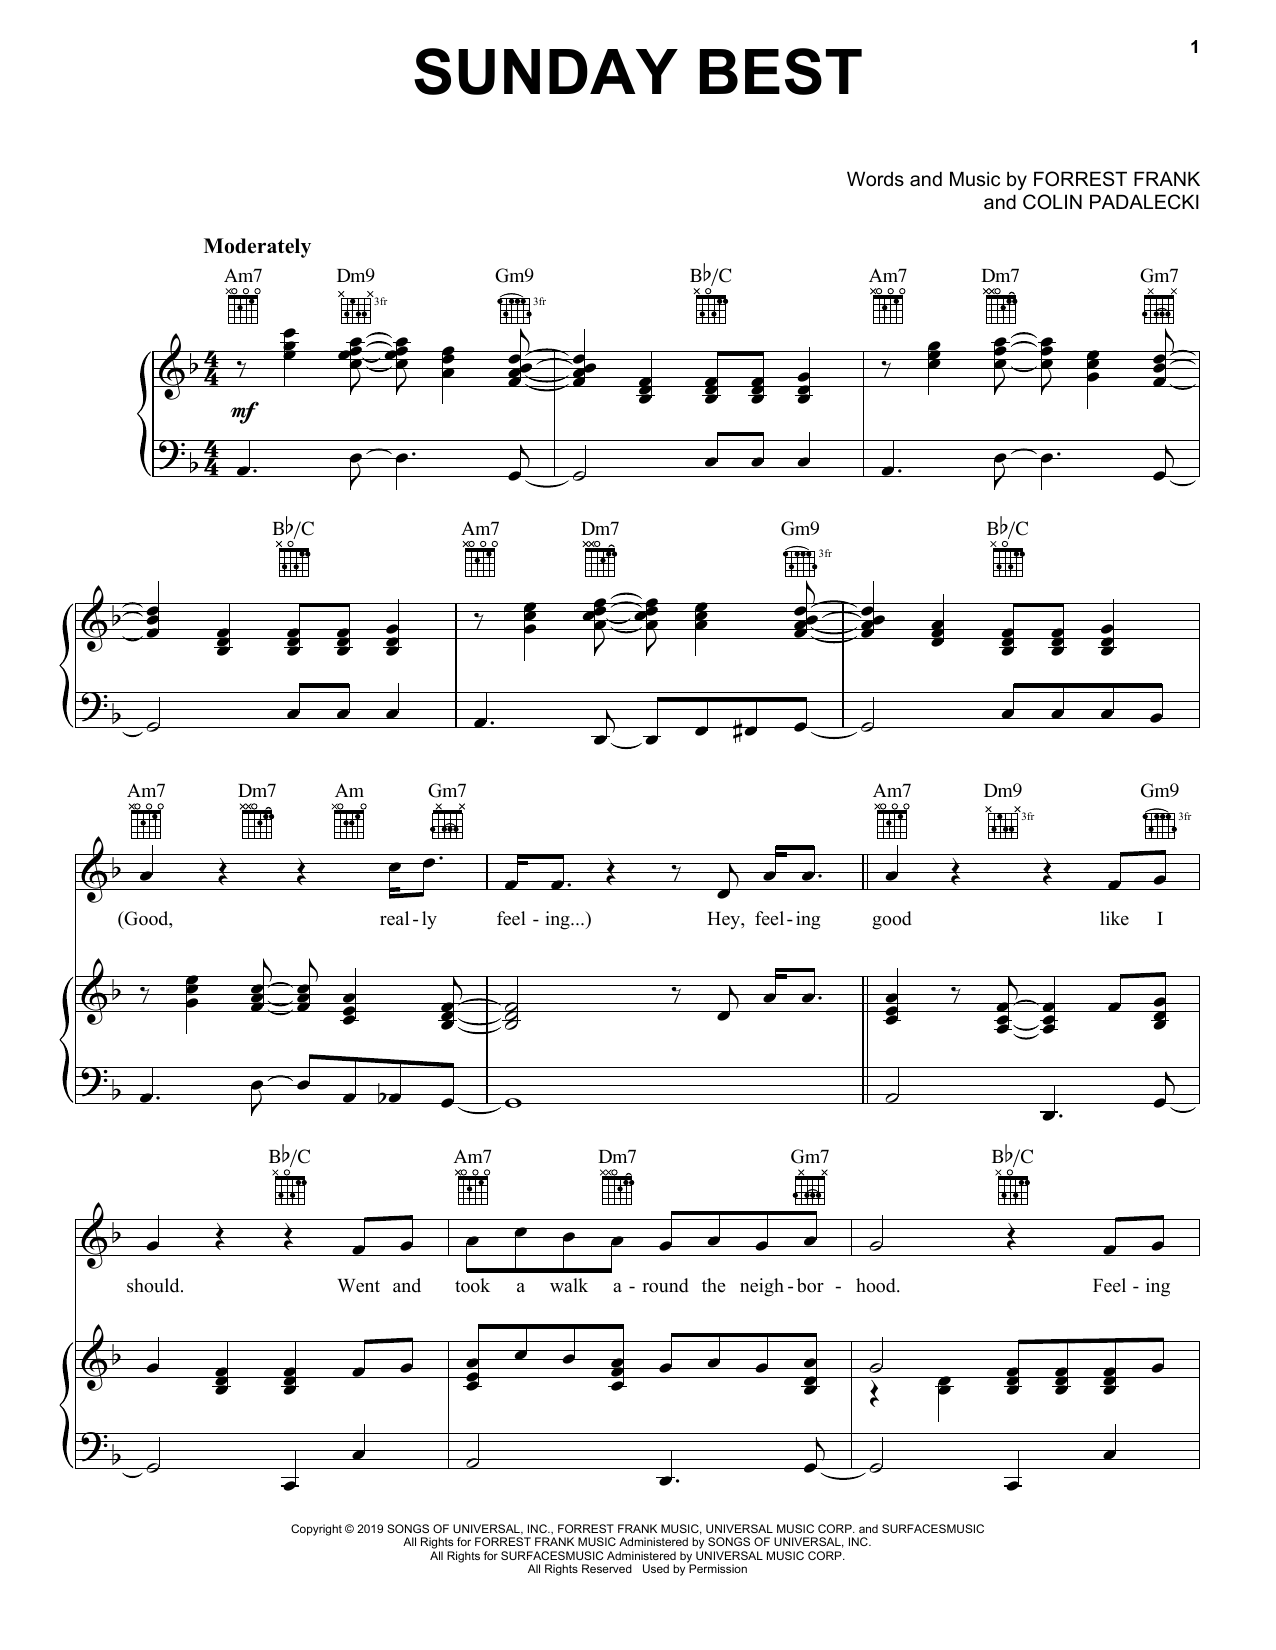 Surfaces Sunday Best Sheet Music And Printable Pdf Music Notes Sheet Music Sheet Music Notes Song Notes